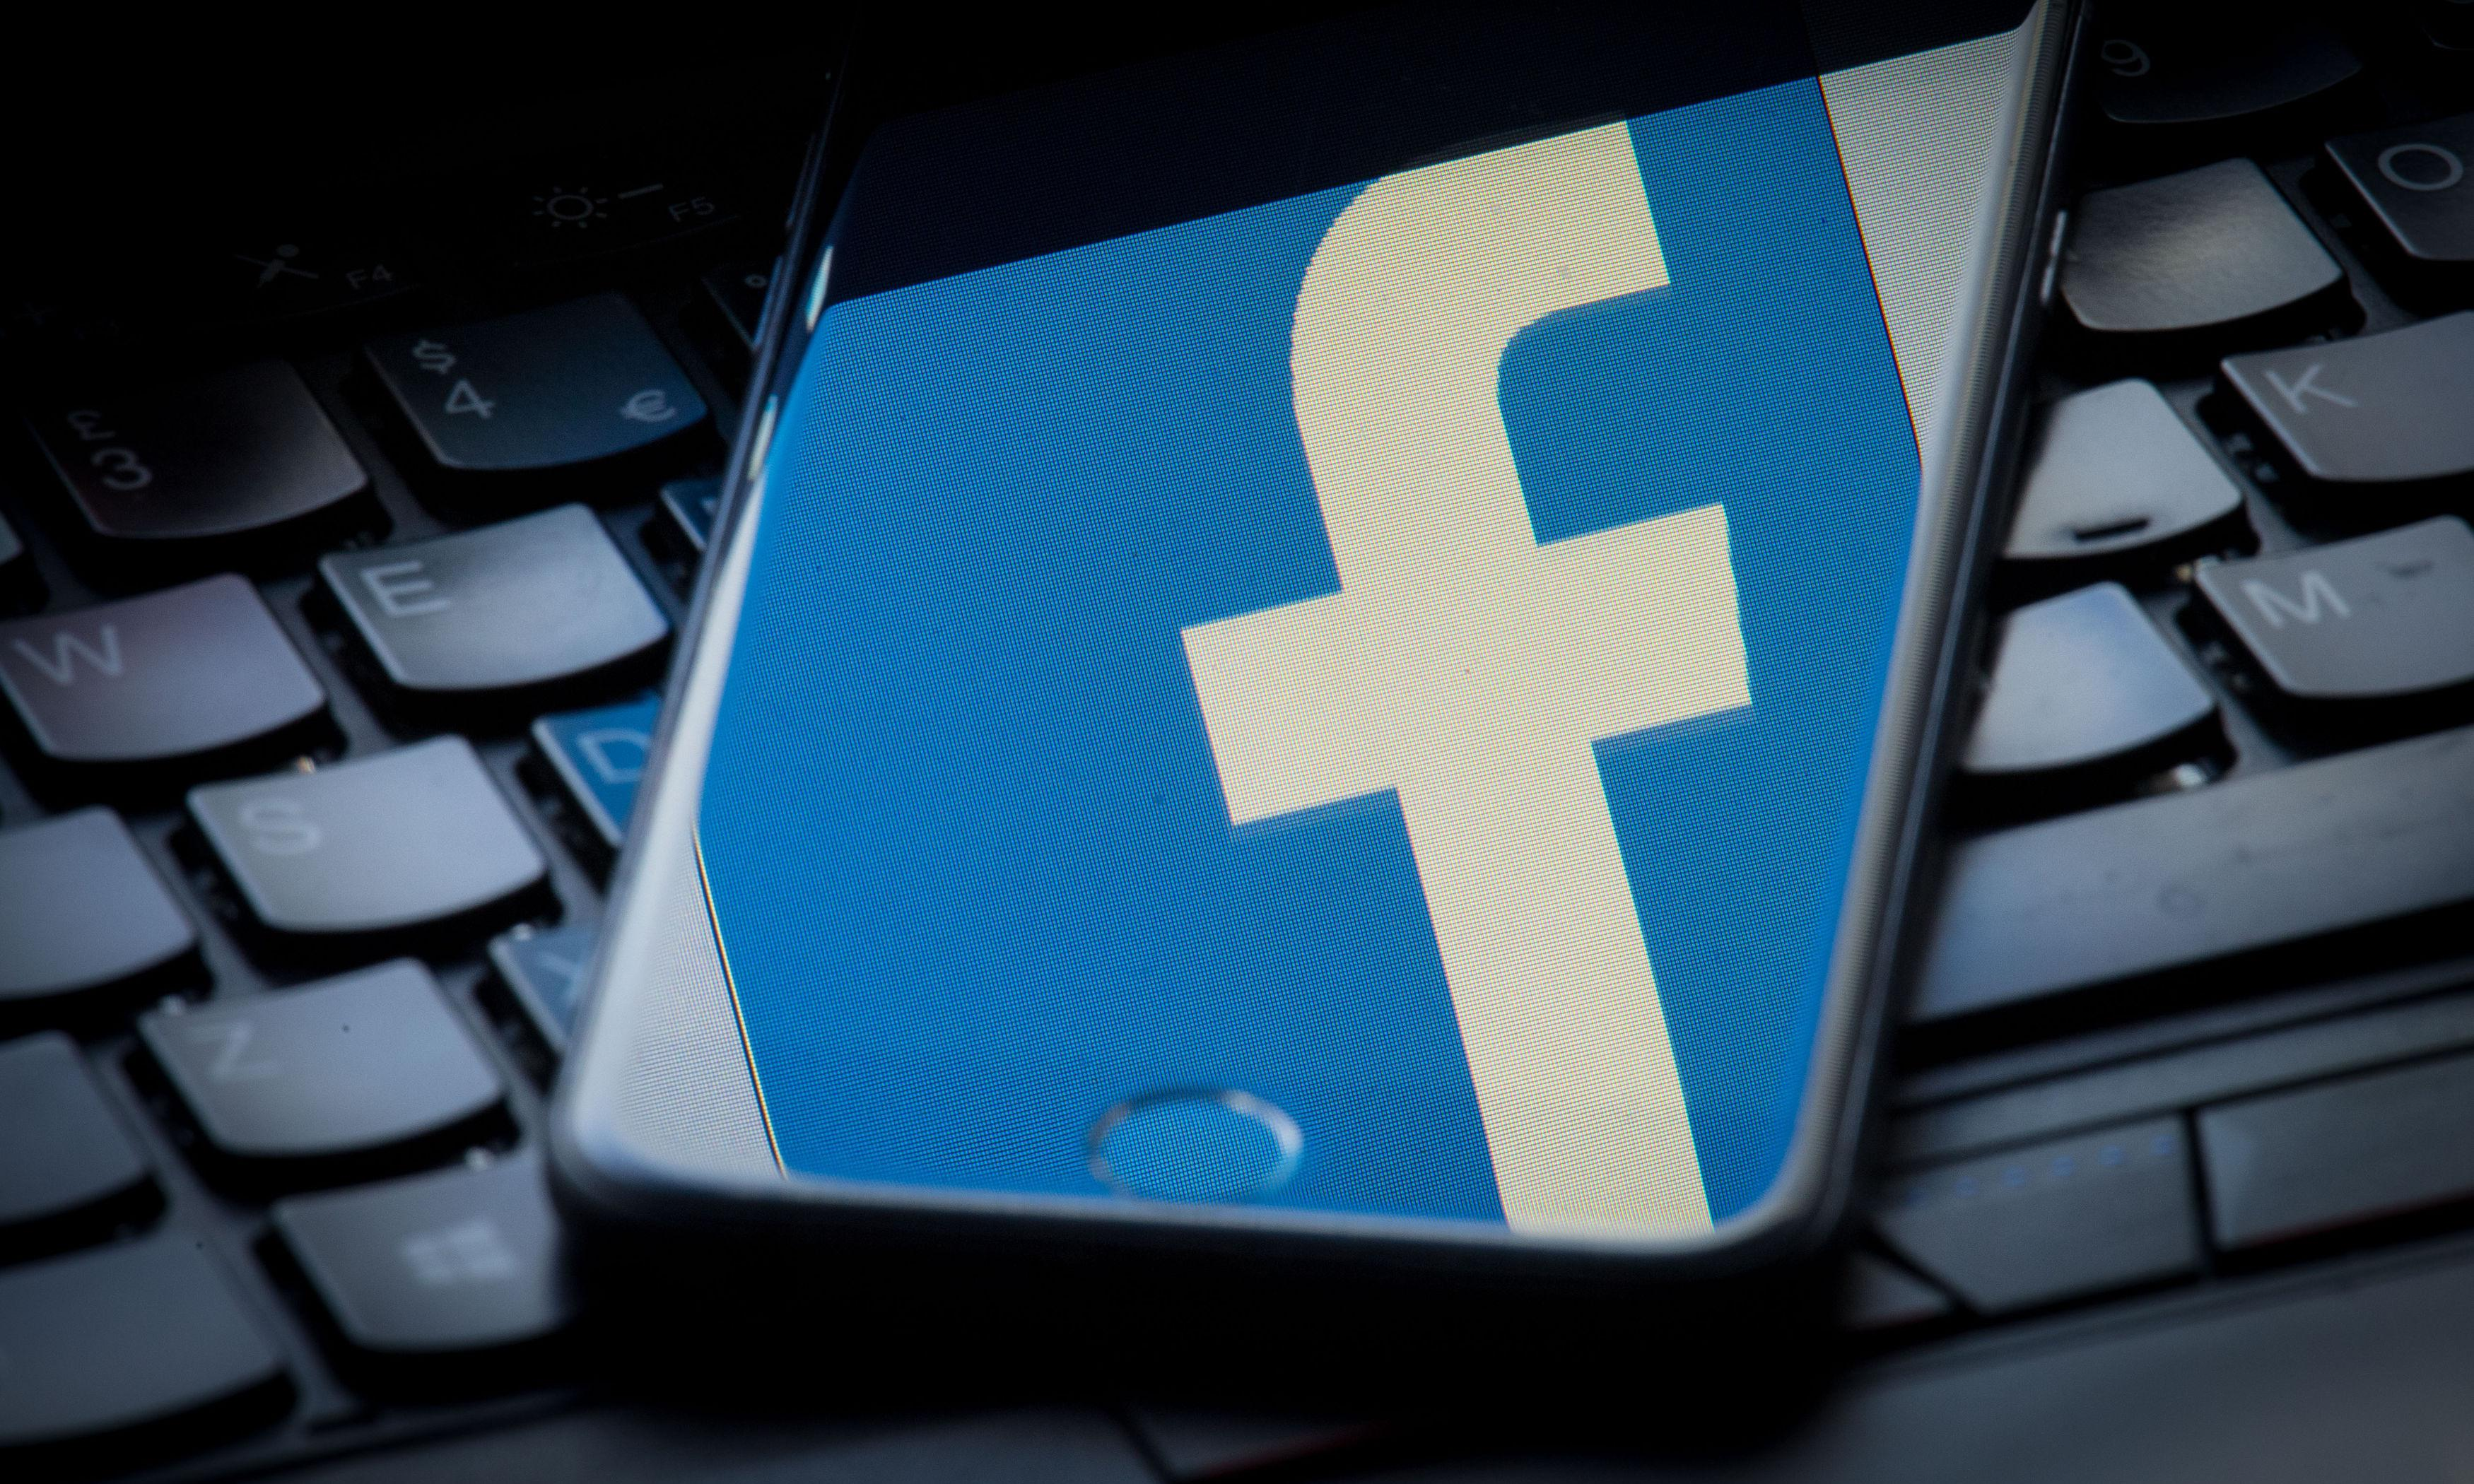 Facebook paid just £28m tax after record £1.6bn revenues in UK